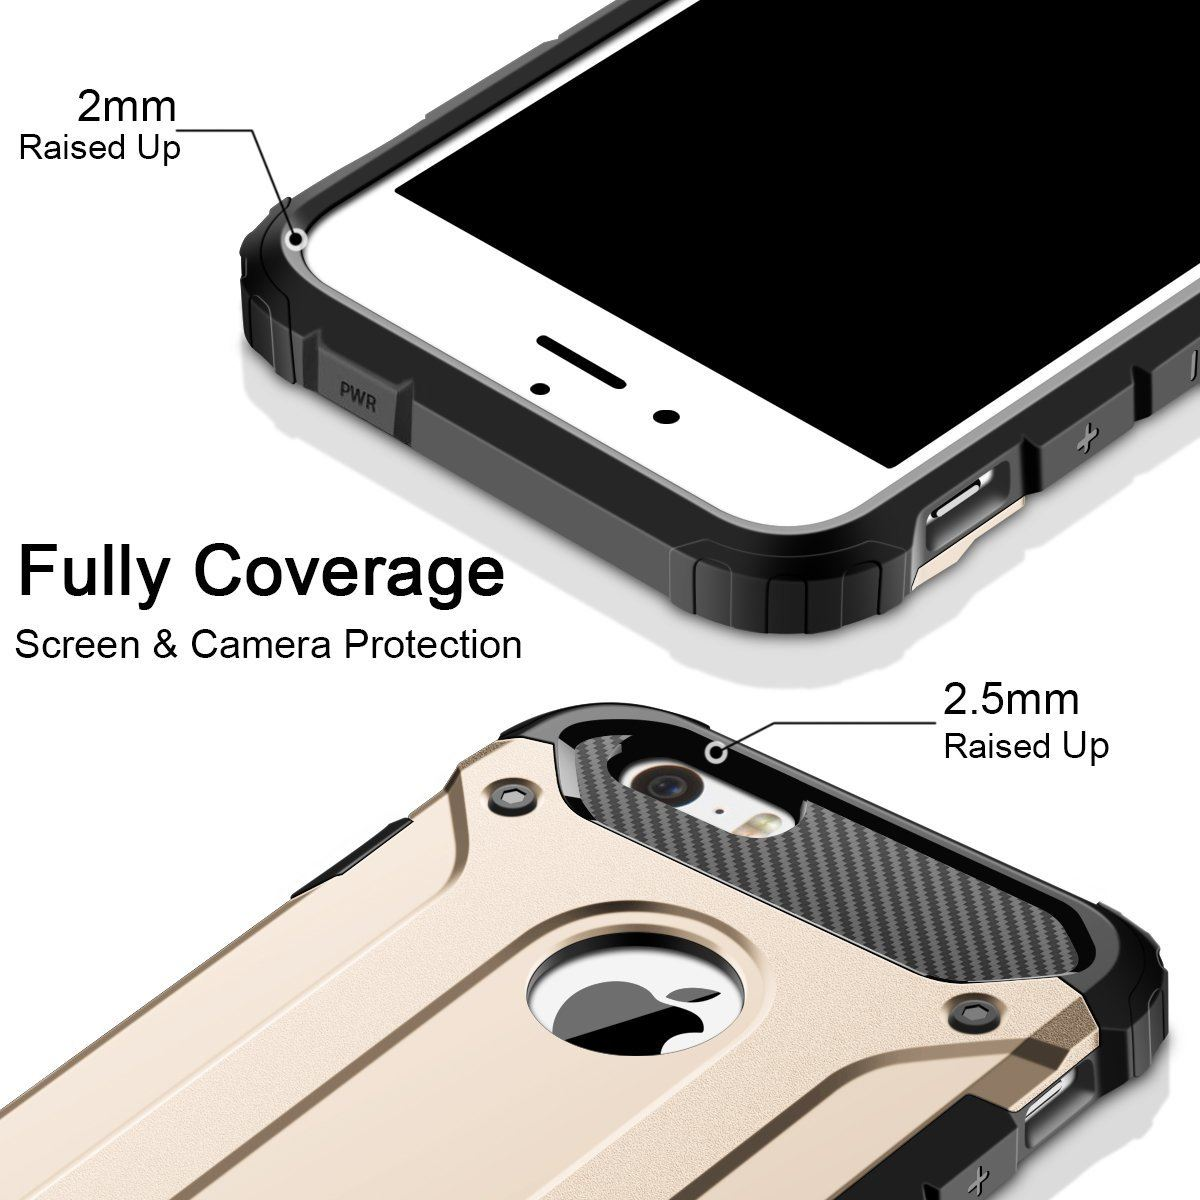 Hybrid-Armor-Shockproof-Rugged-Bumper-Case-For-Apple-iPhone-10-X-8-7-Plus-6s-5s miniature 52